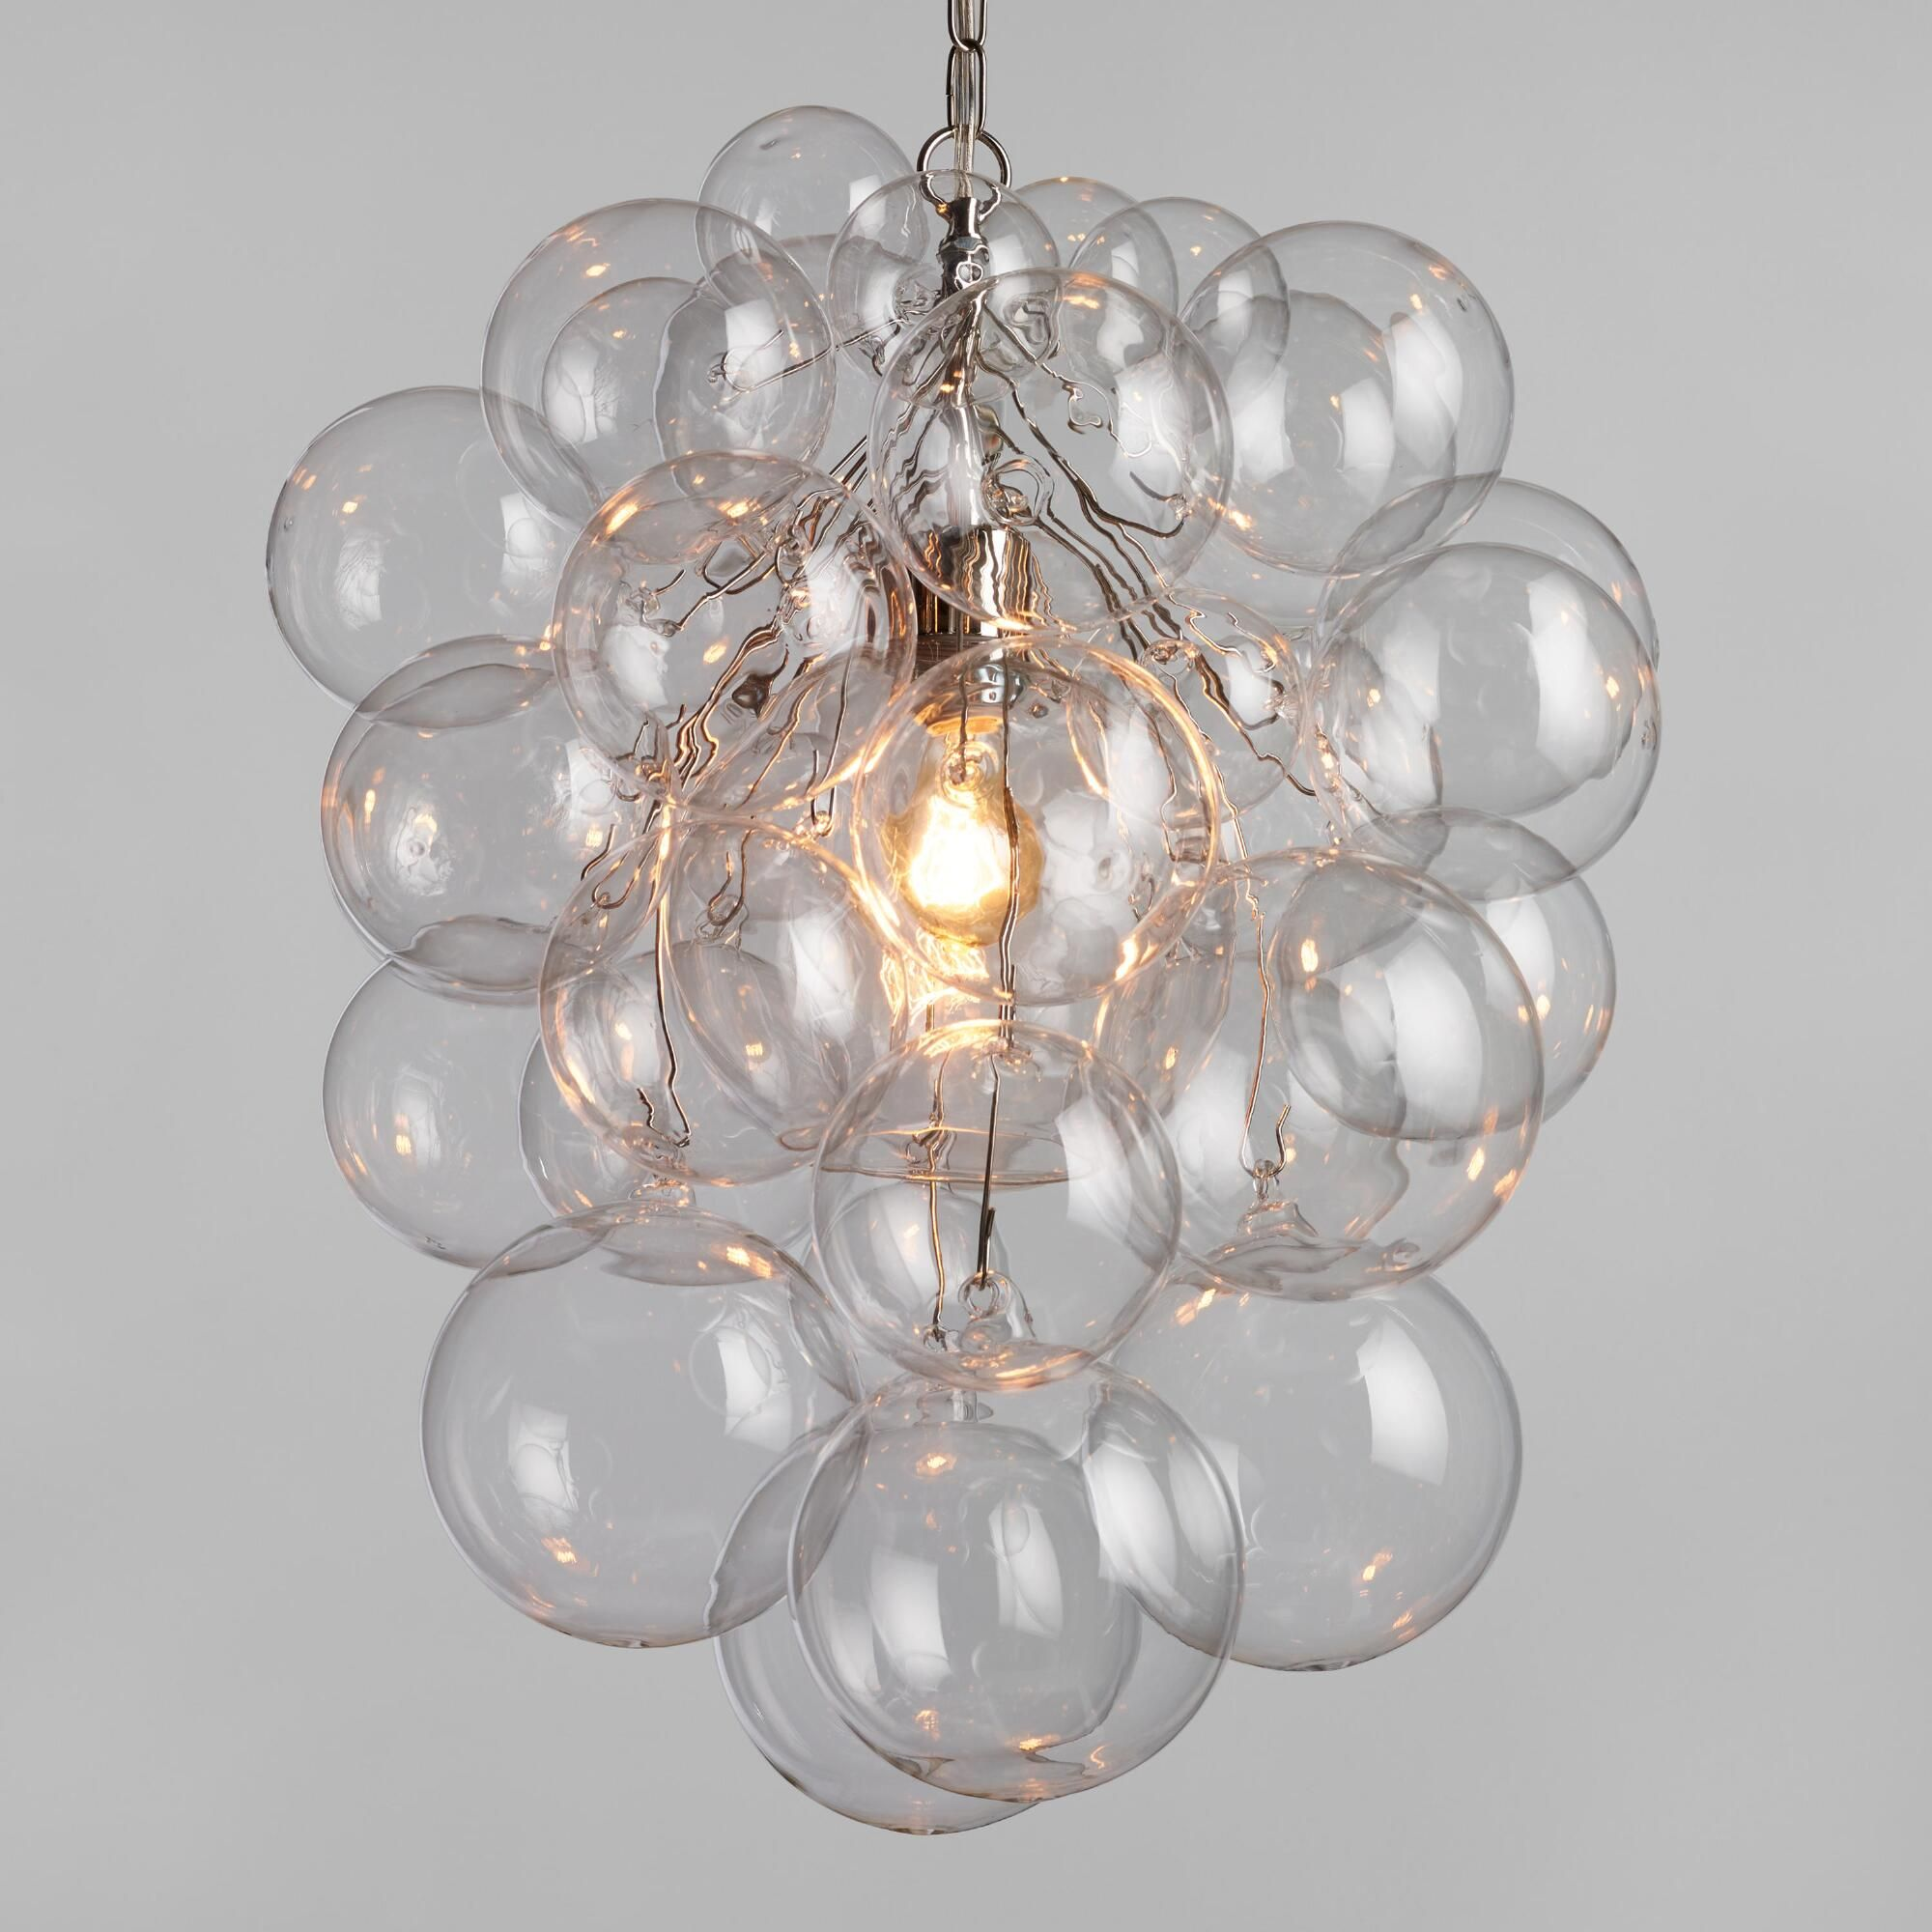 Bubble Glass Orb Chandelier | Organic form, Blown glass and Bubbles